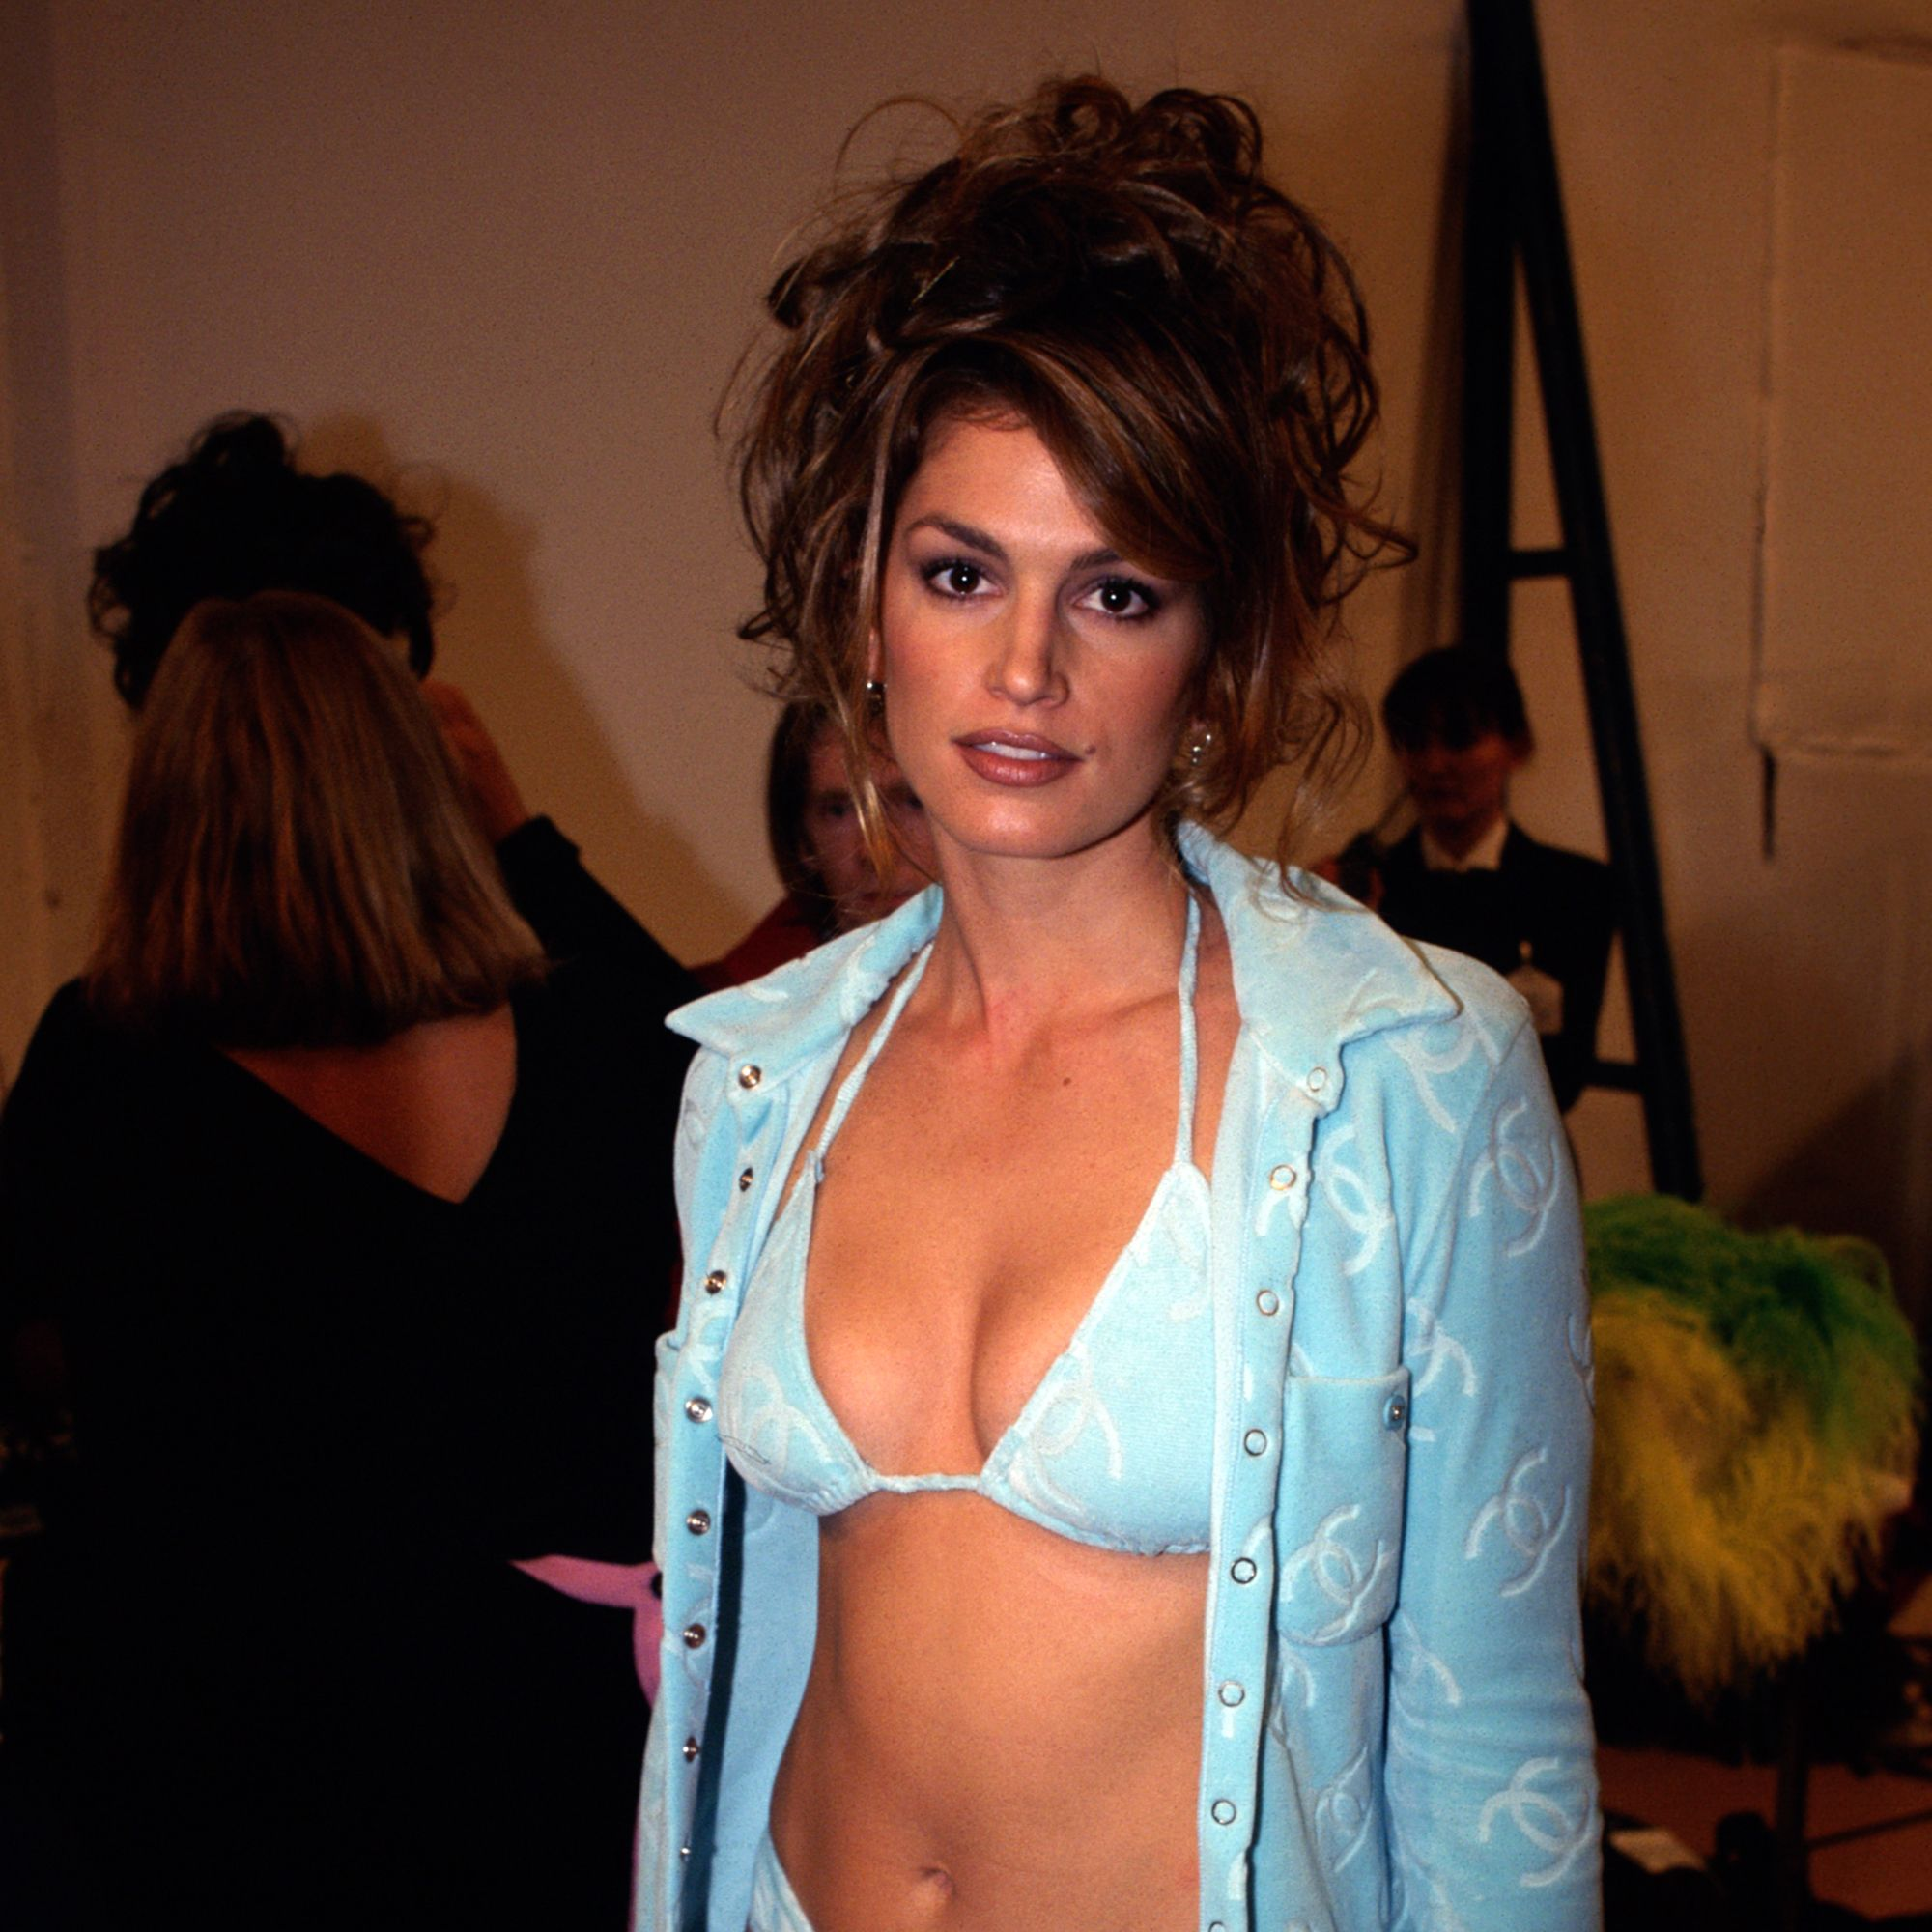 1996, France --- Supermodel Cindy Crawford wearing a powder blue bikini and shirt, backstage, at the showing of Chanel's spring-summer ready-to-wear collection. --- Image by © Photo B.D.V./CORBIS